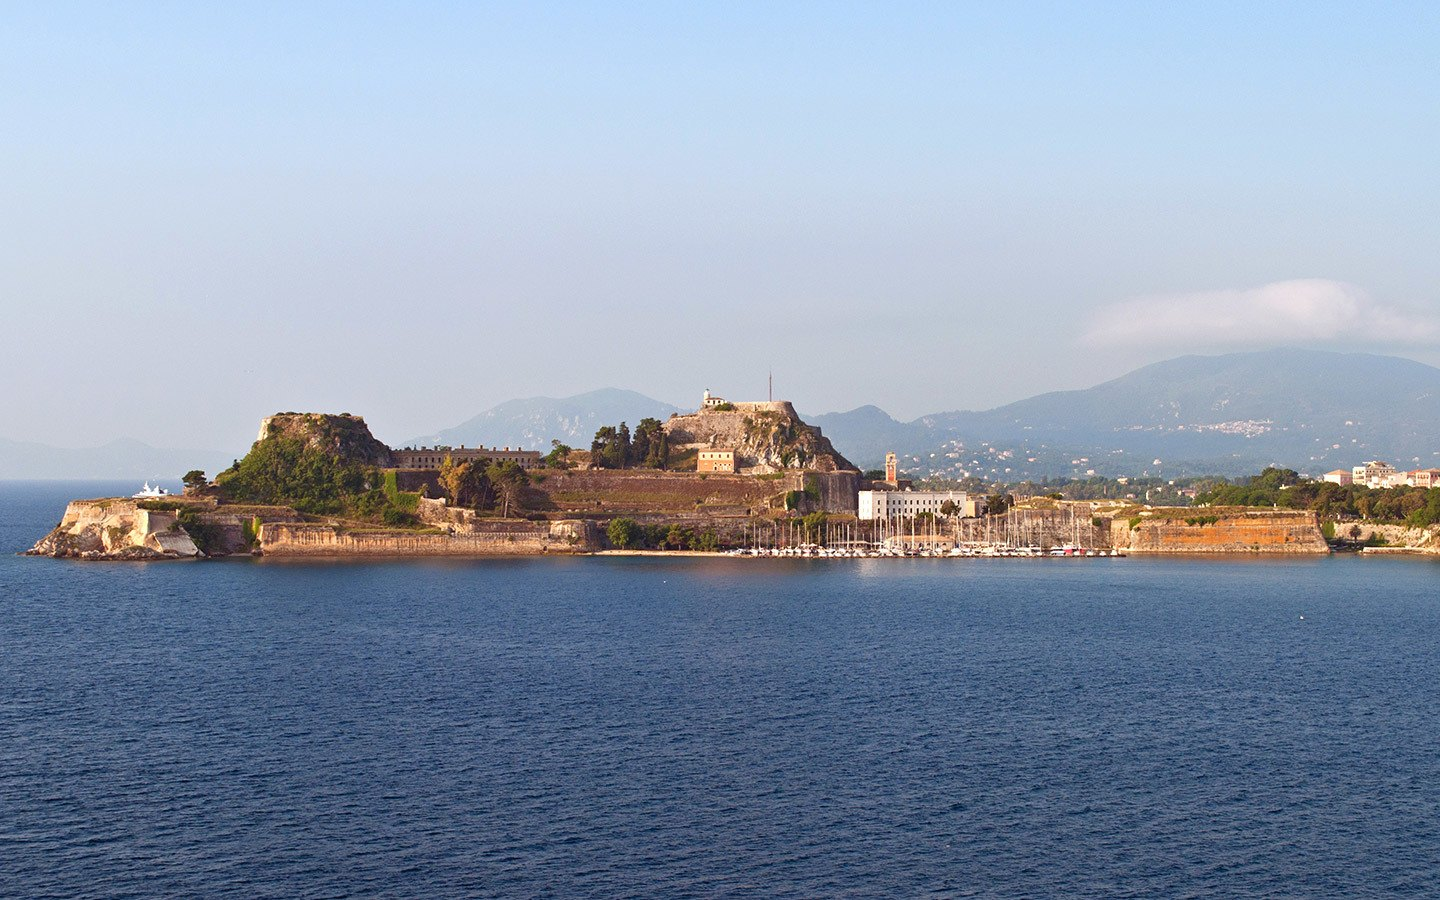 Sailing into Corfu early in the morning